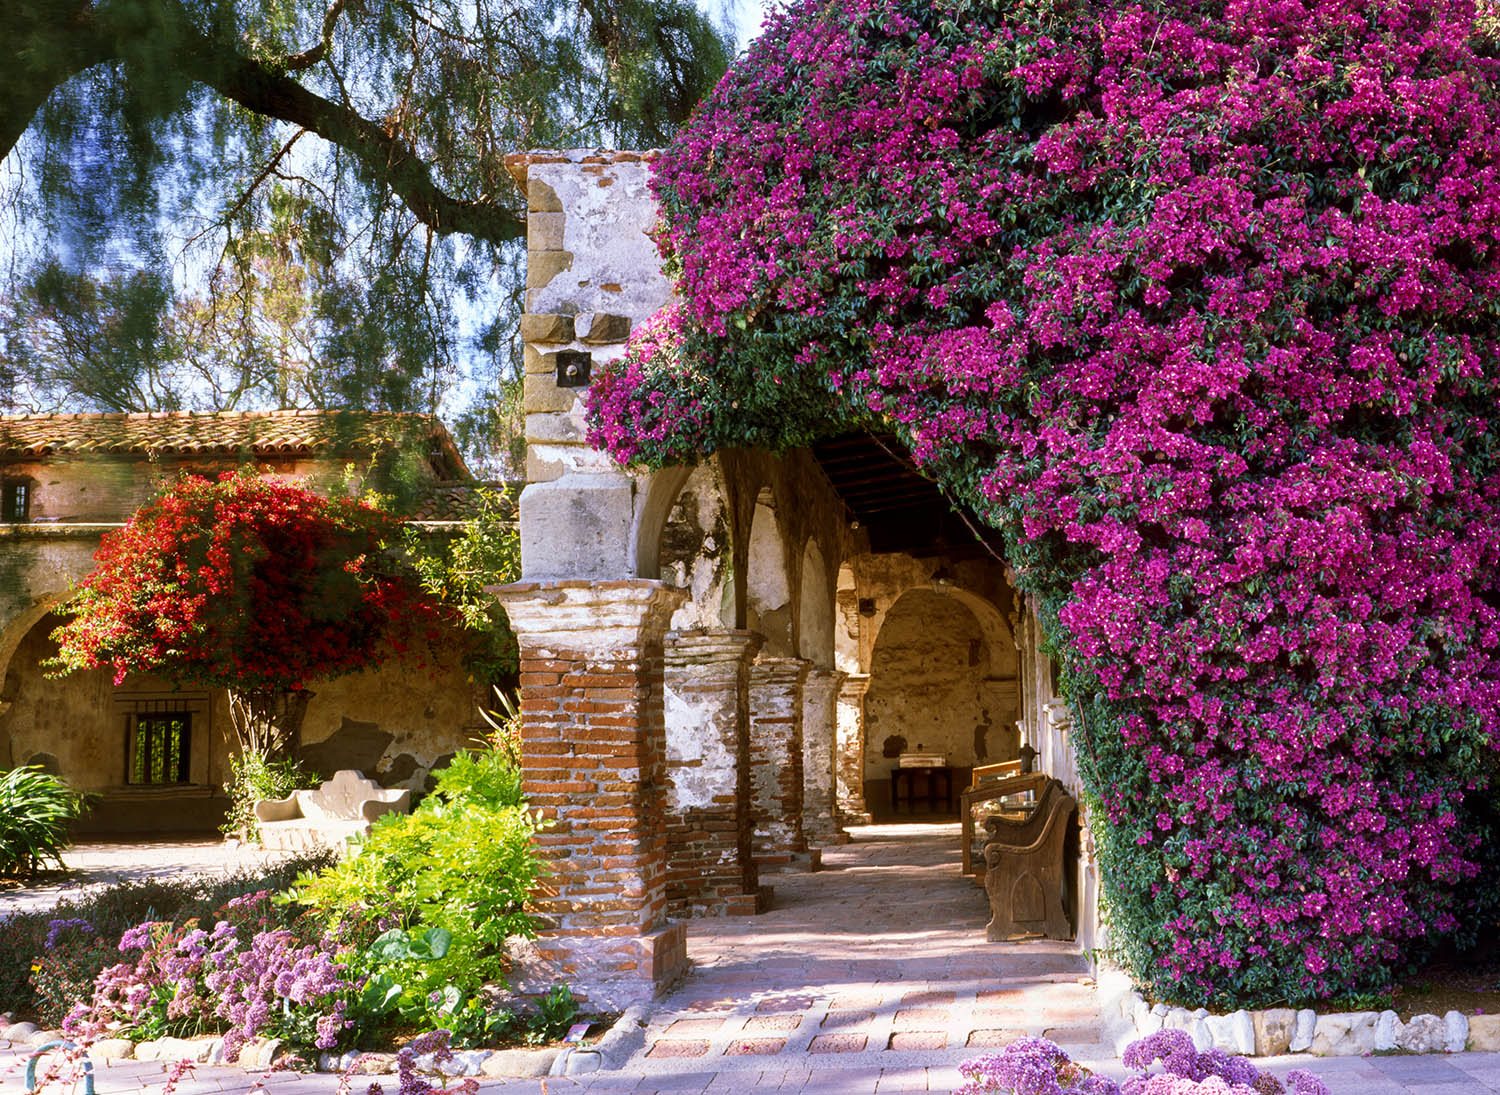 This is the wonderful old Colonnade at the Mission San Juan Capistrano, built in 1796. I returned on several occasions until...